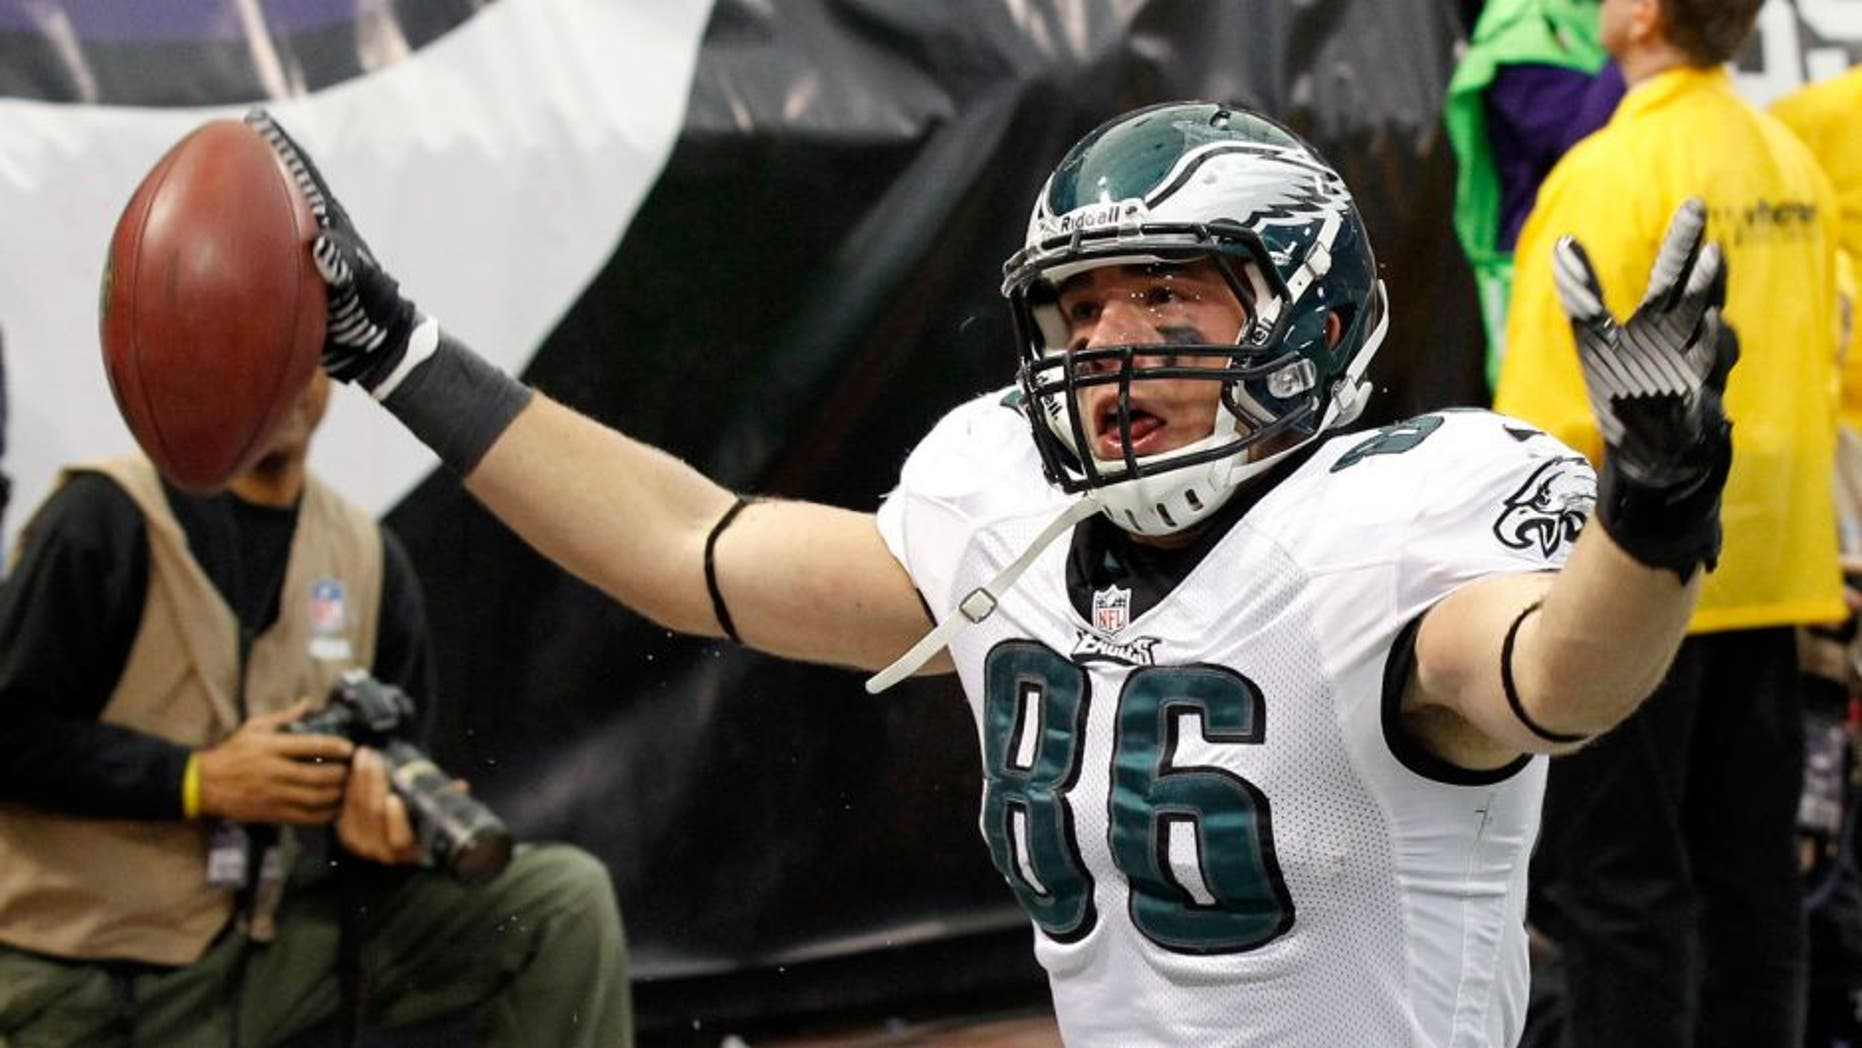 Philadelphia Eagles tight end Zach Ertz reacts after catching a 3-yard touchdown pass during the second half of an NFL football game against the Minnesota Vikings, Sunday, Dec. 15, 2013, in Minneapolis. (AP Photo/Ann Heisenfelt)